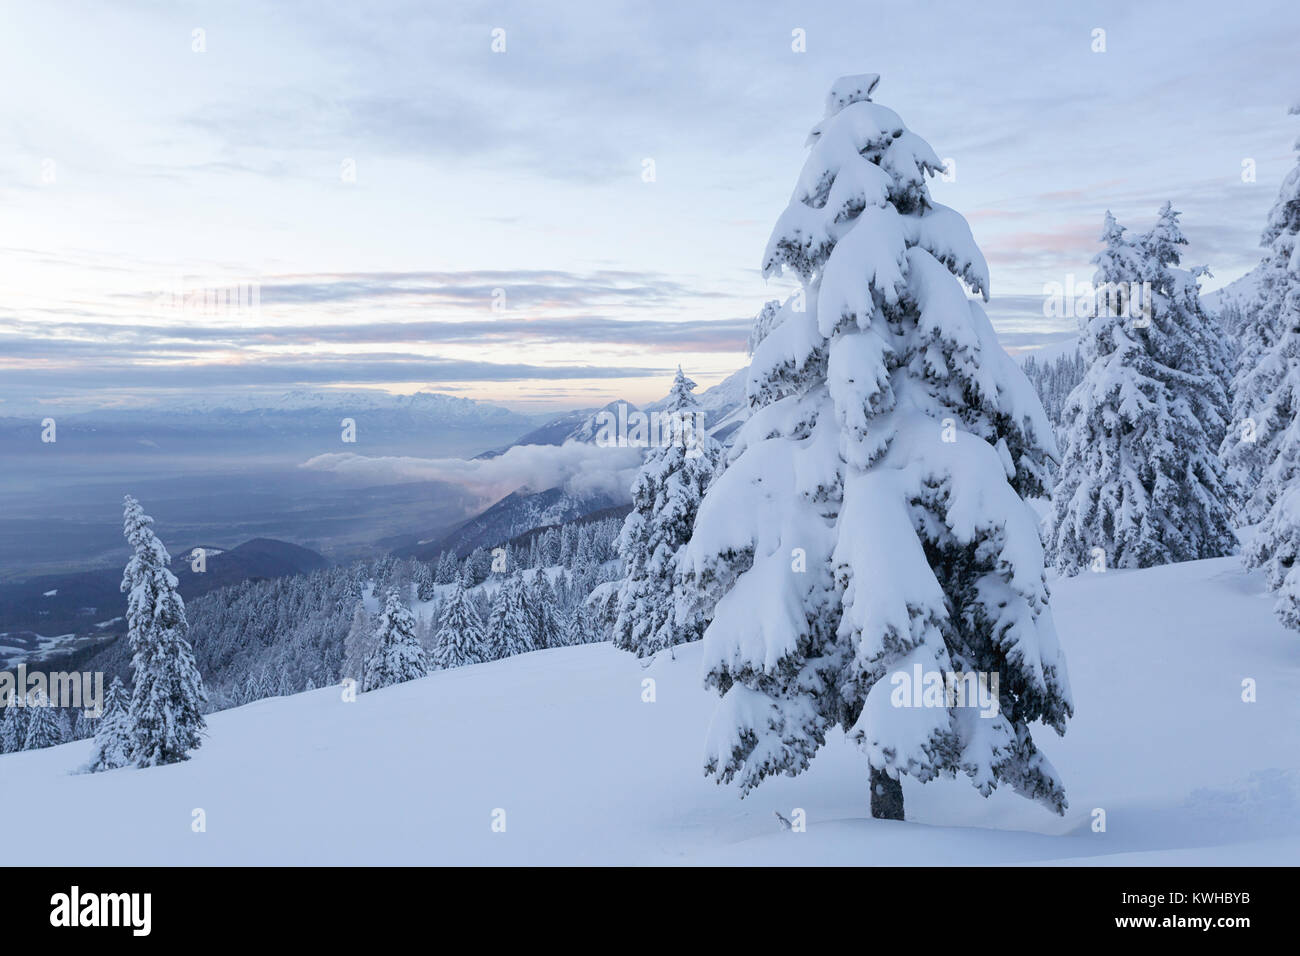 Winter wonderland, frozen spruces on a snow covered mountain, view over the valley, Krvavec, Slovenia. - Stock Image